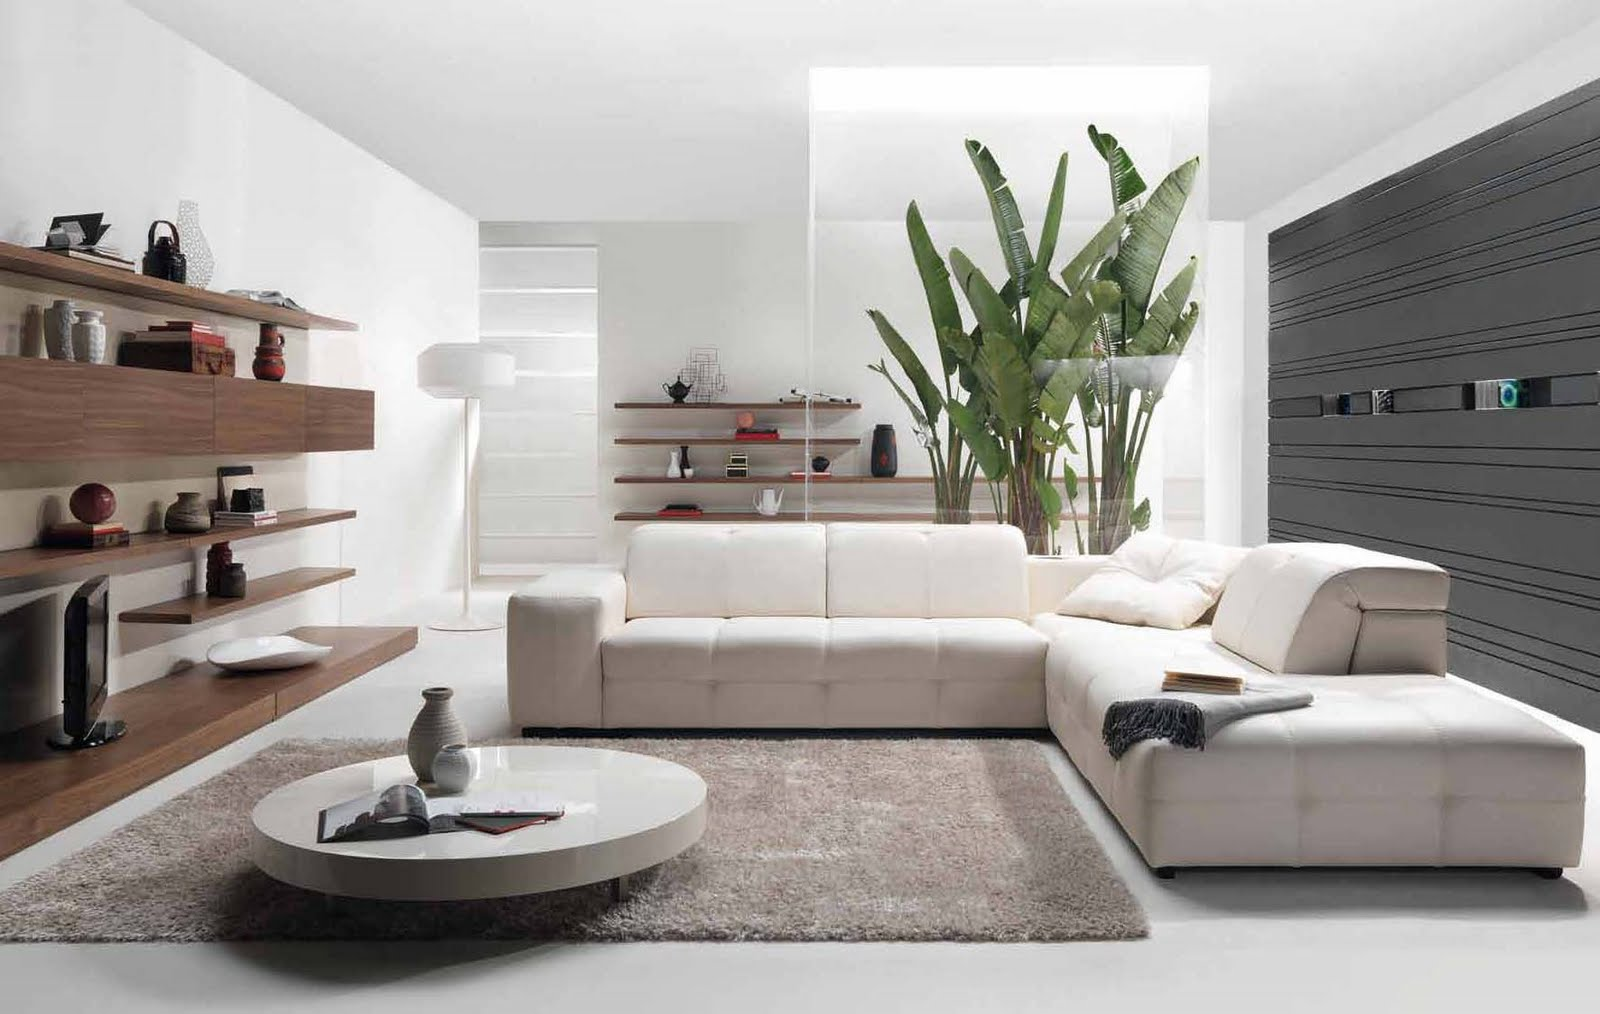 Future house design modern living room interior design for Interior decoration designs living room